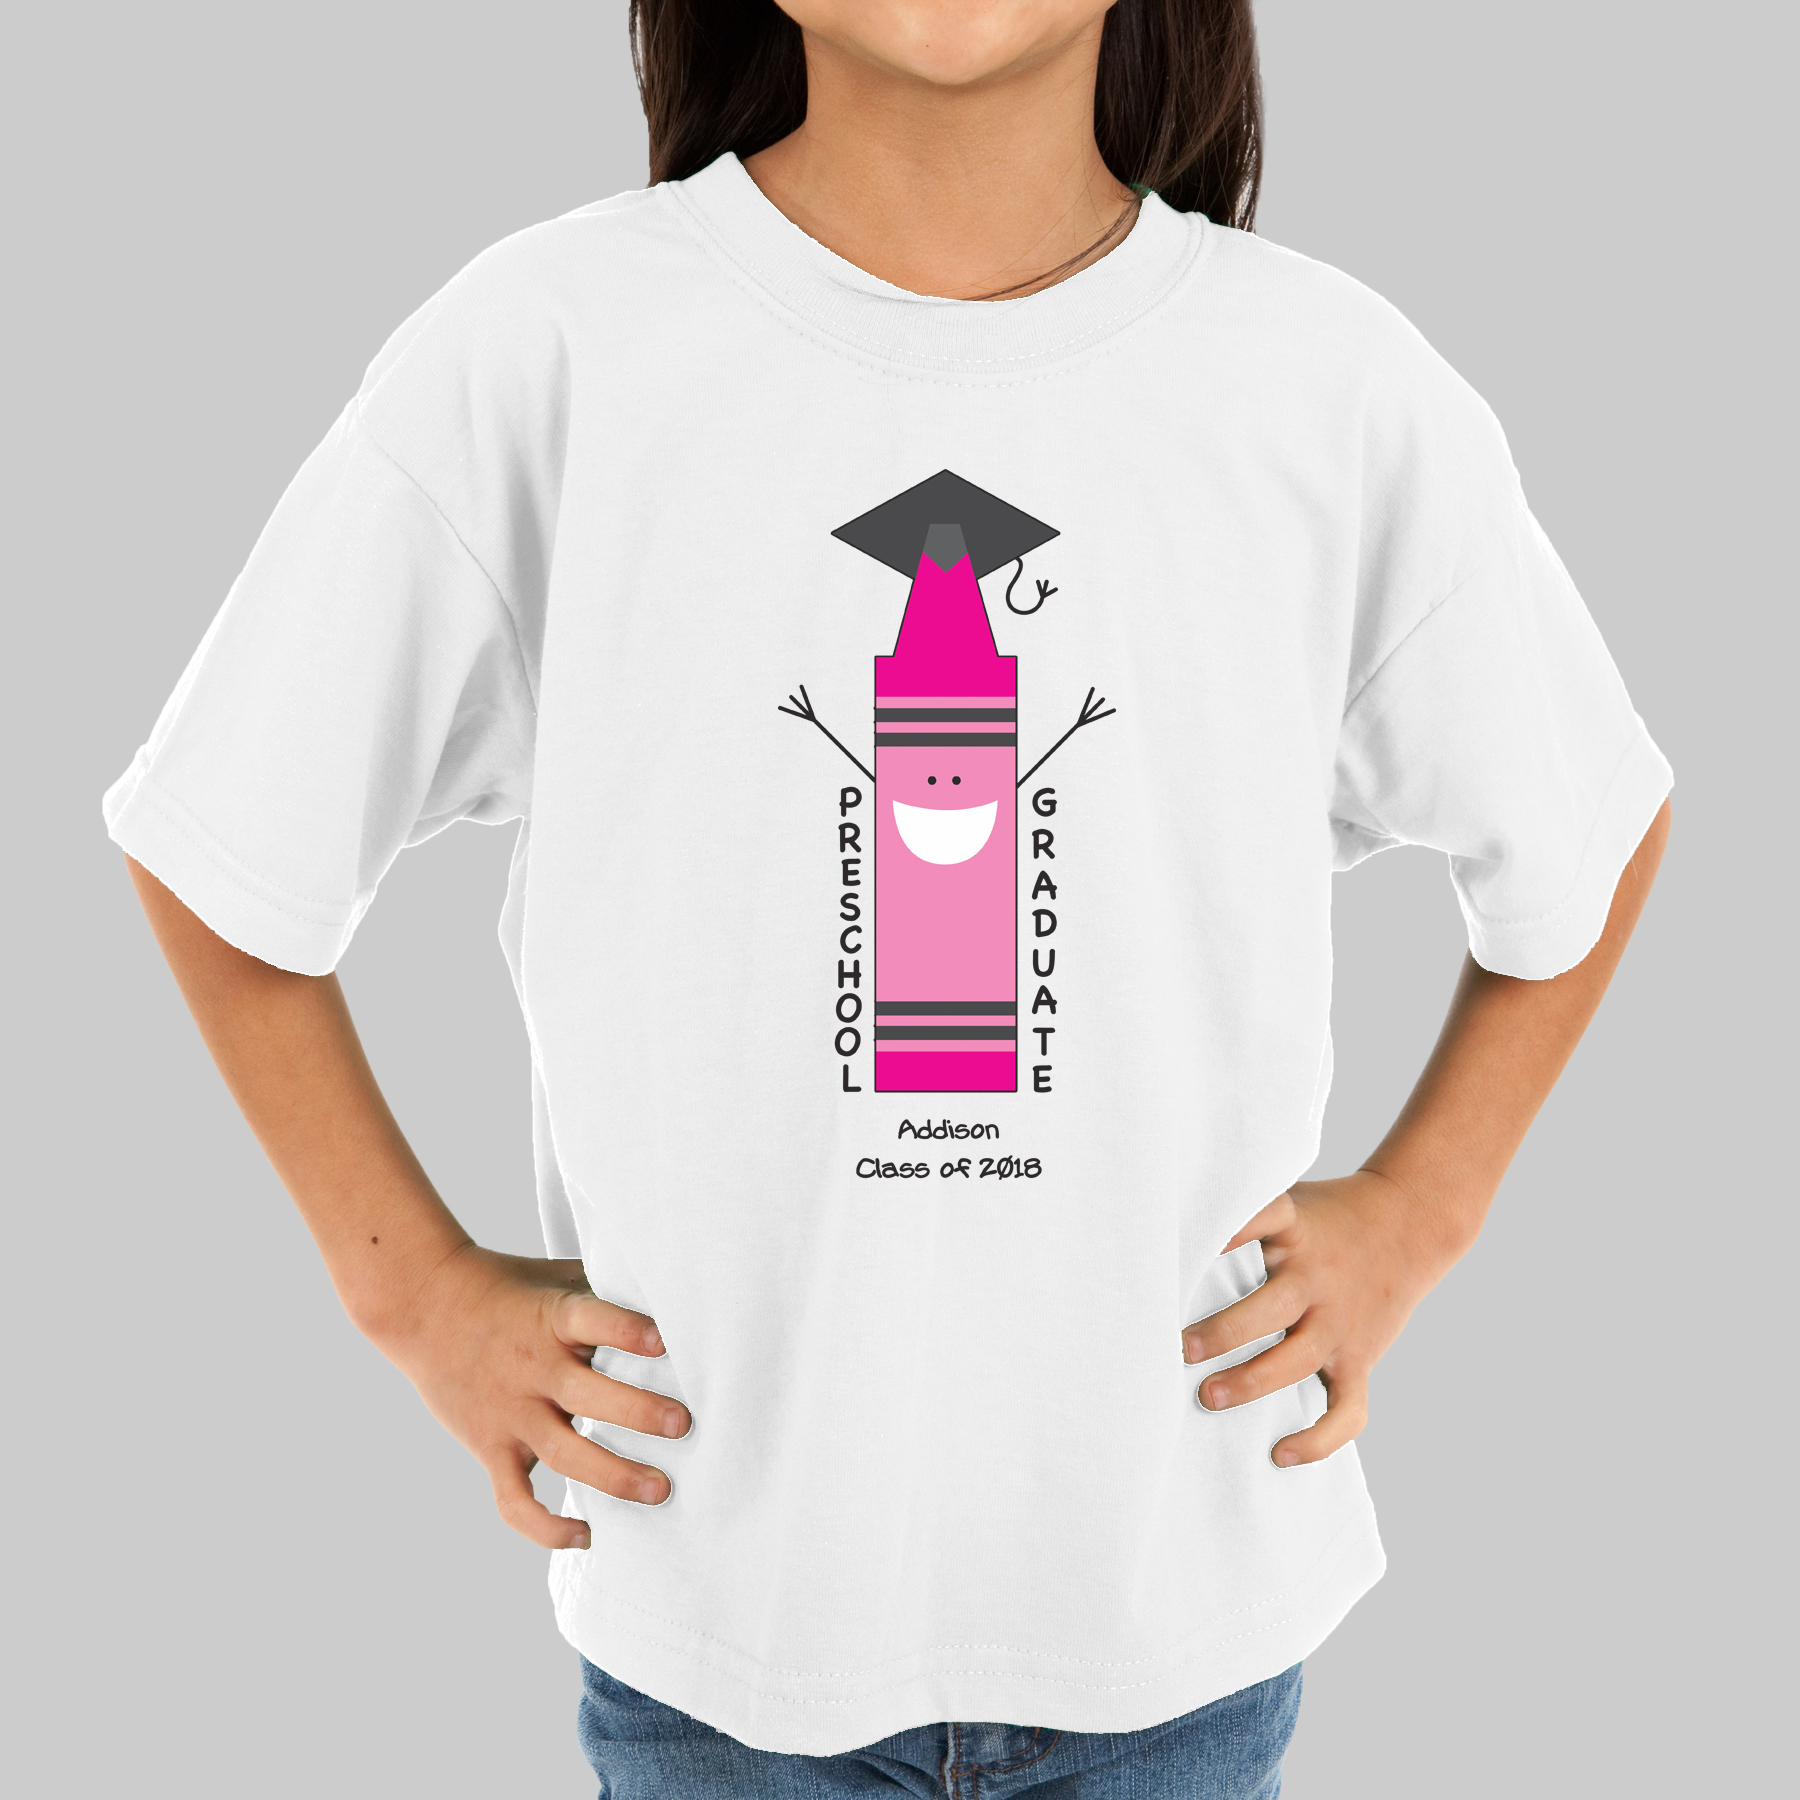 Personalized Preschool Graduation T-Shirt 35865X